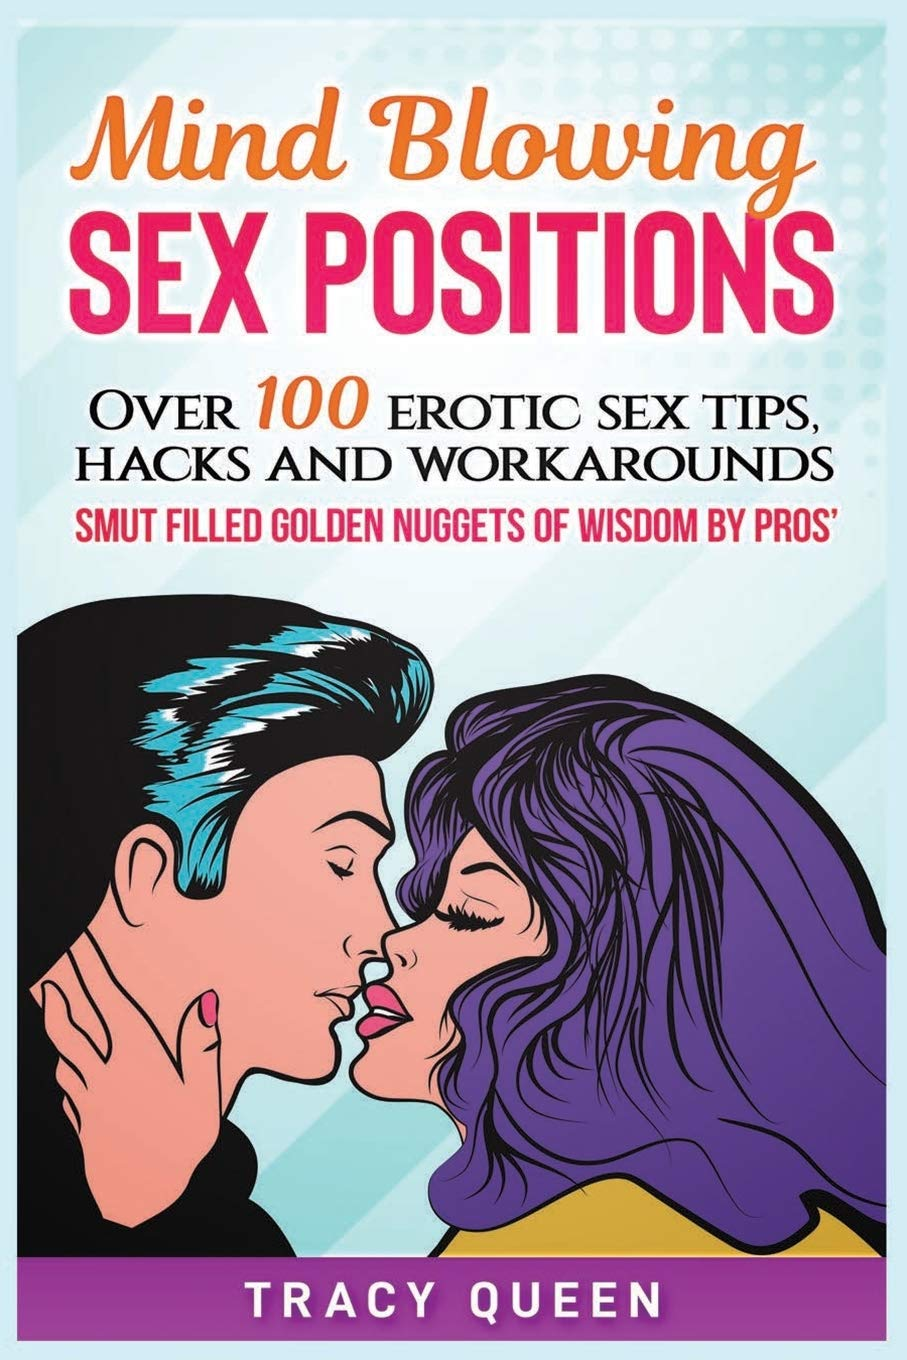 Mind Blowing Sex Positions: Over 100 Erotic Sex Tips, Hacks and Workarounds  Smut Filled Golden Nuggets of Wisdom By Pros' Paperback – November 11, 2018